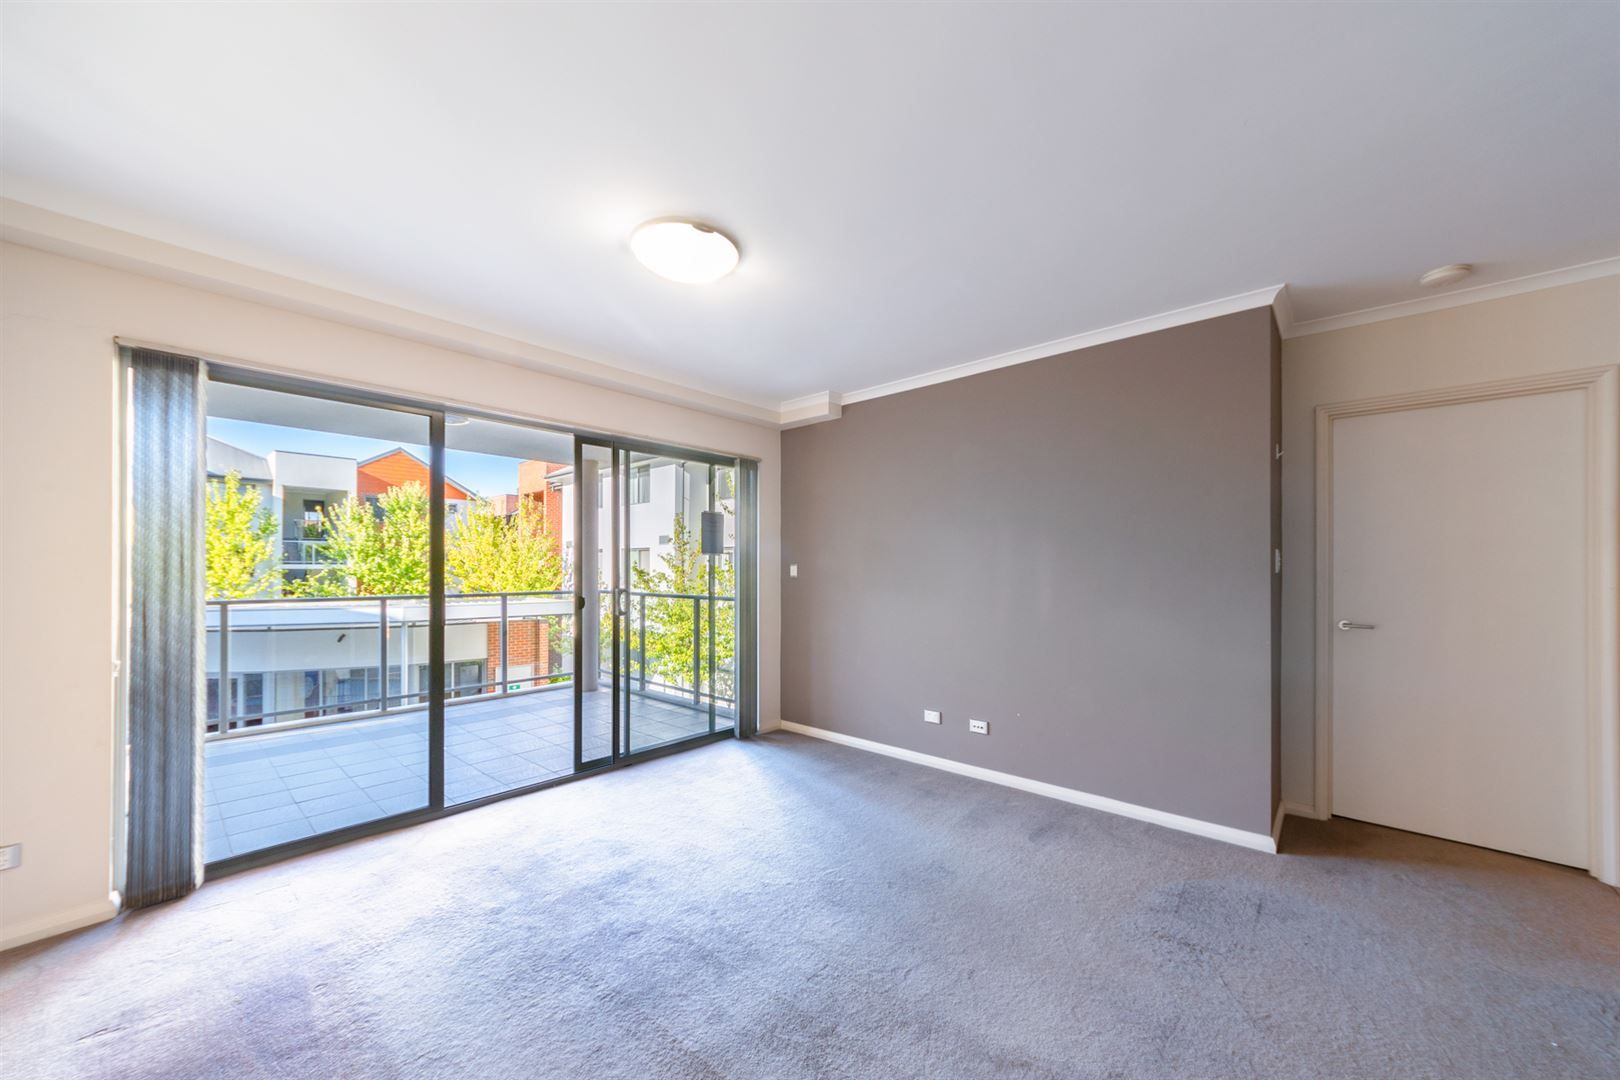 45/49 Sixt Sixth Avenue, Maylands WA 6051, Image 2